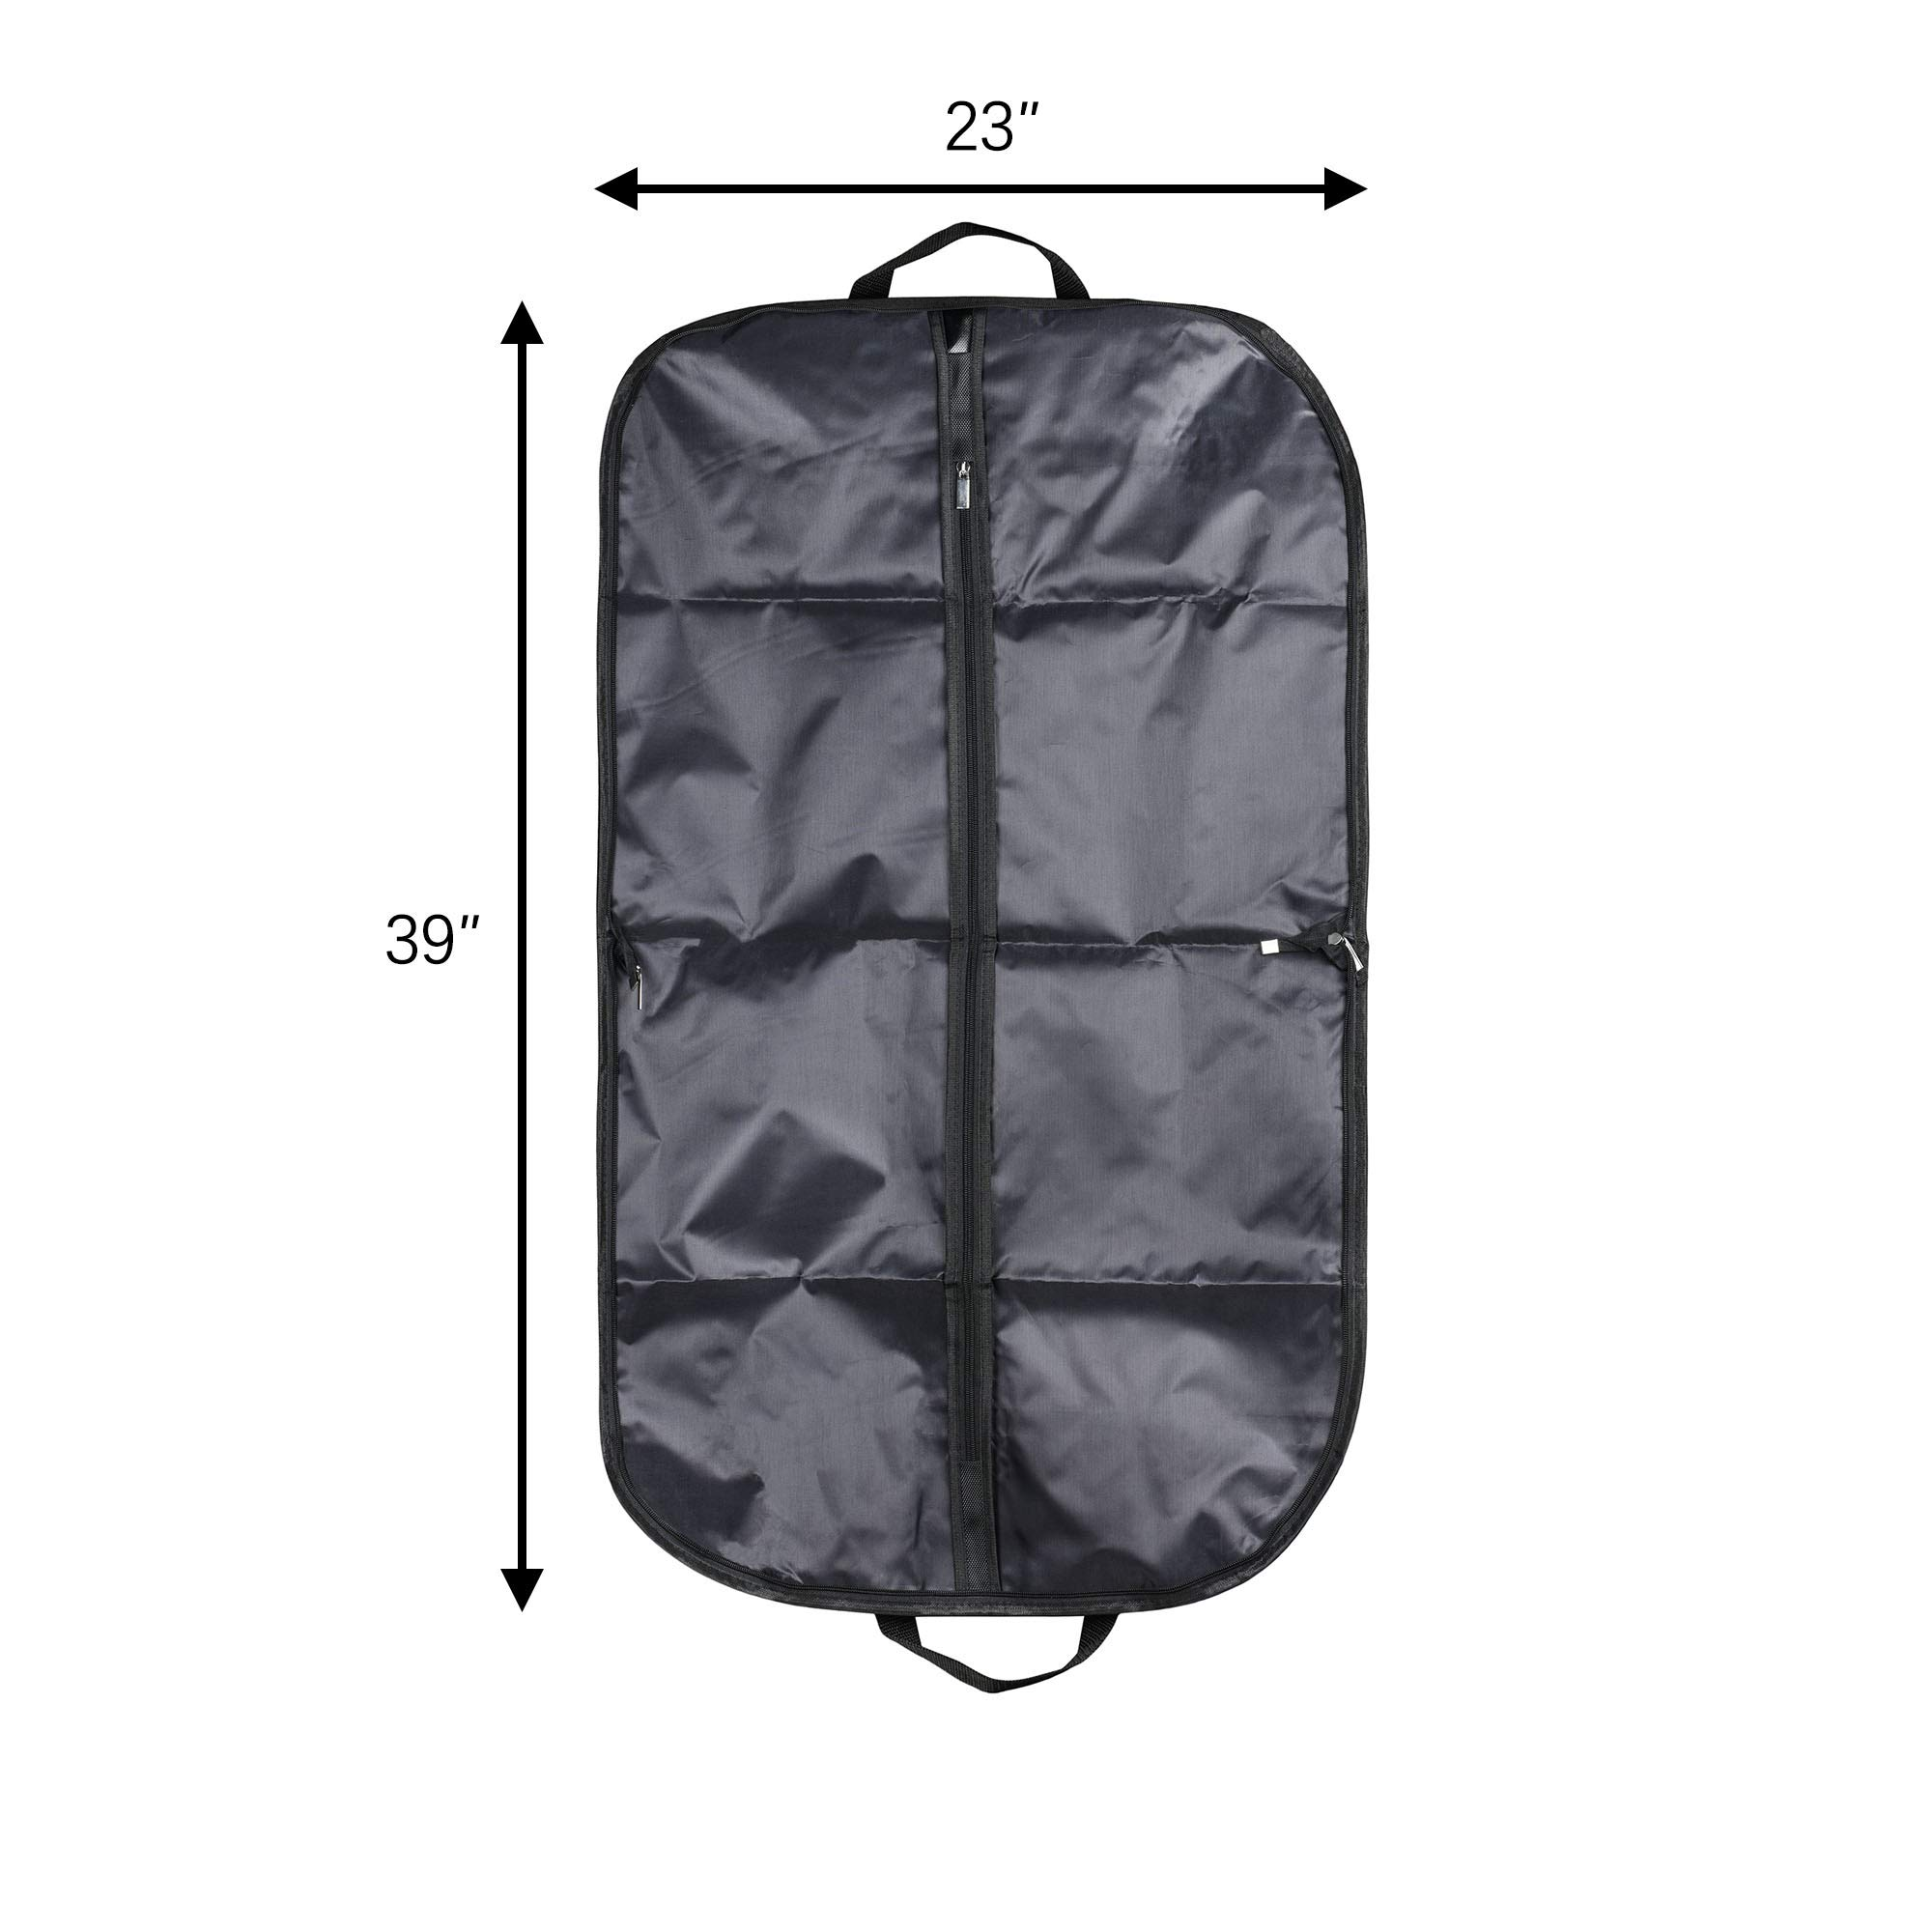 COSMOS Suit & Dress Travel Storage Garment Bag Carry Bag with Handles, 39 x 23 inches by CM (Image #3)